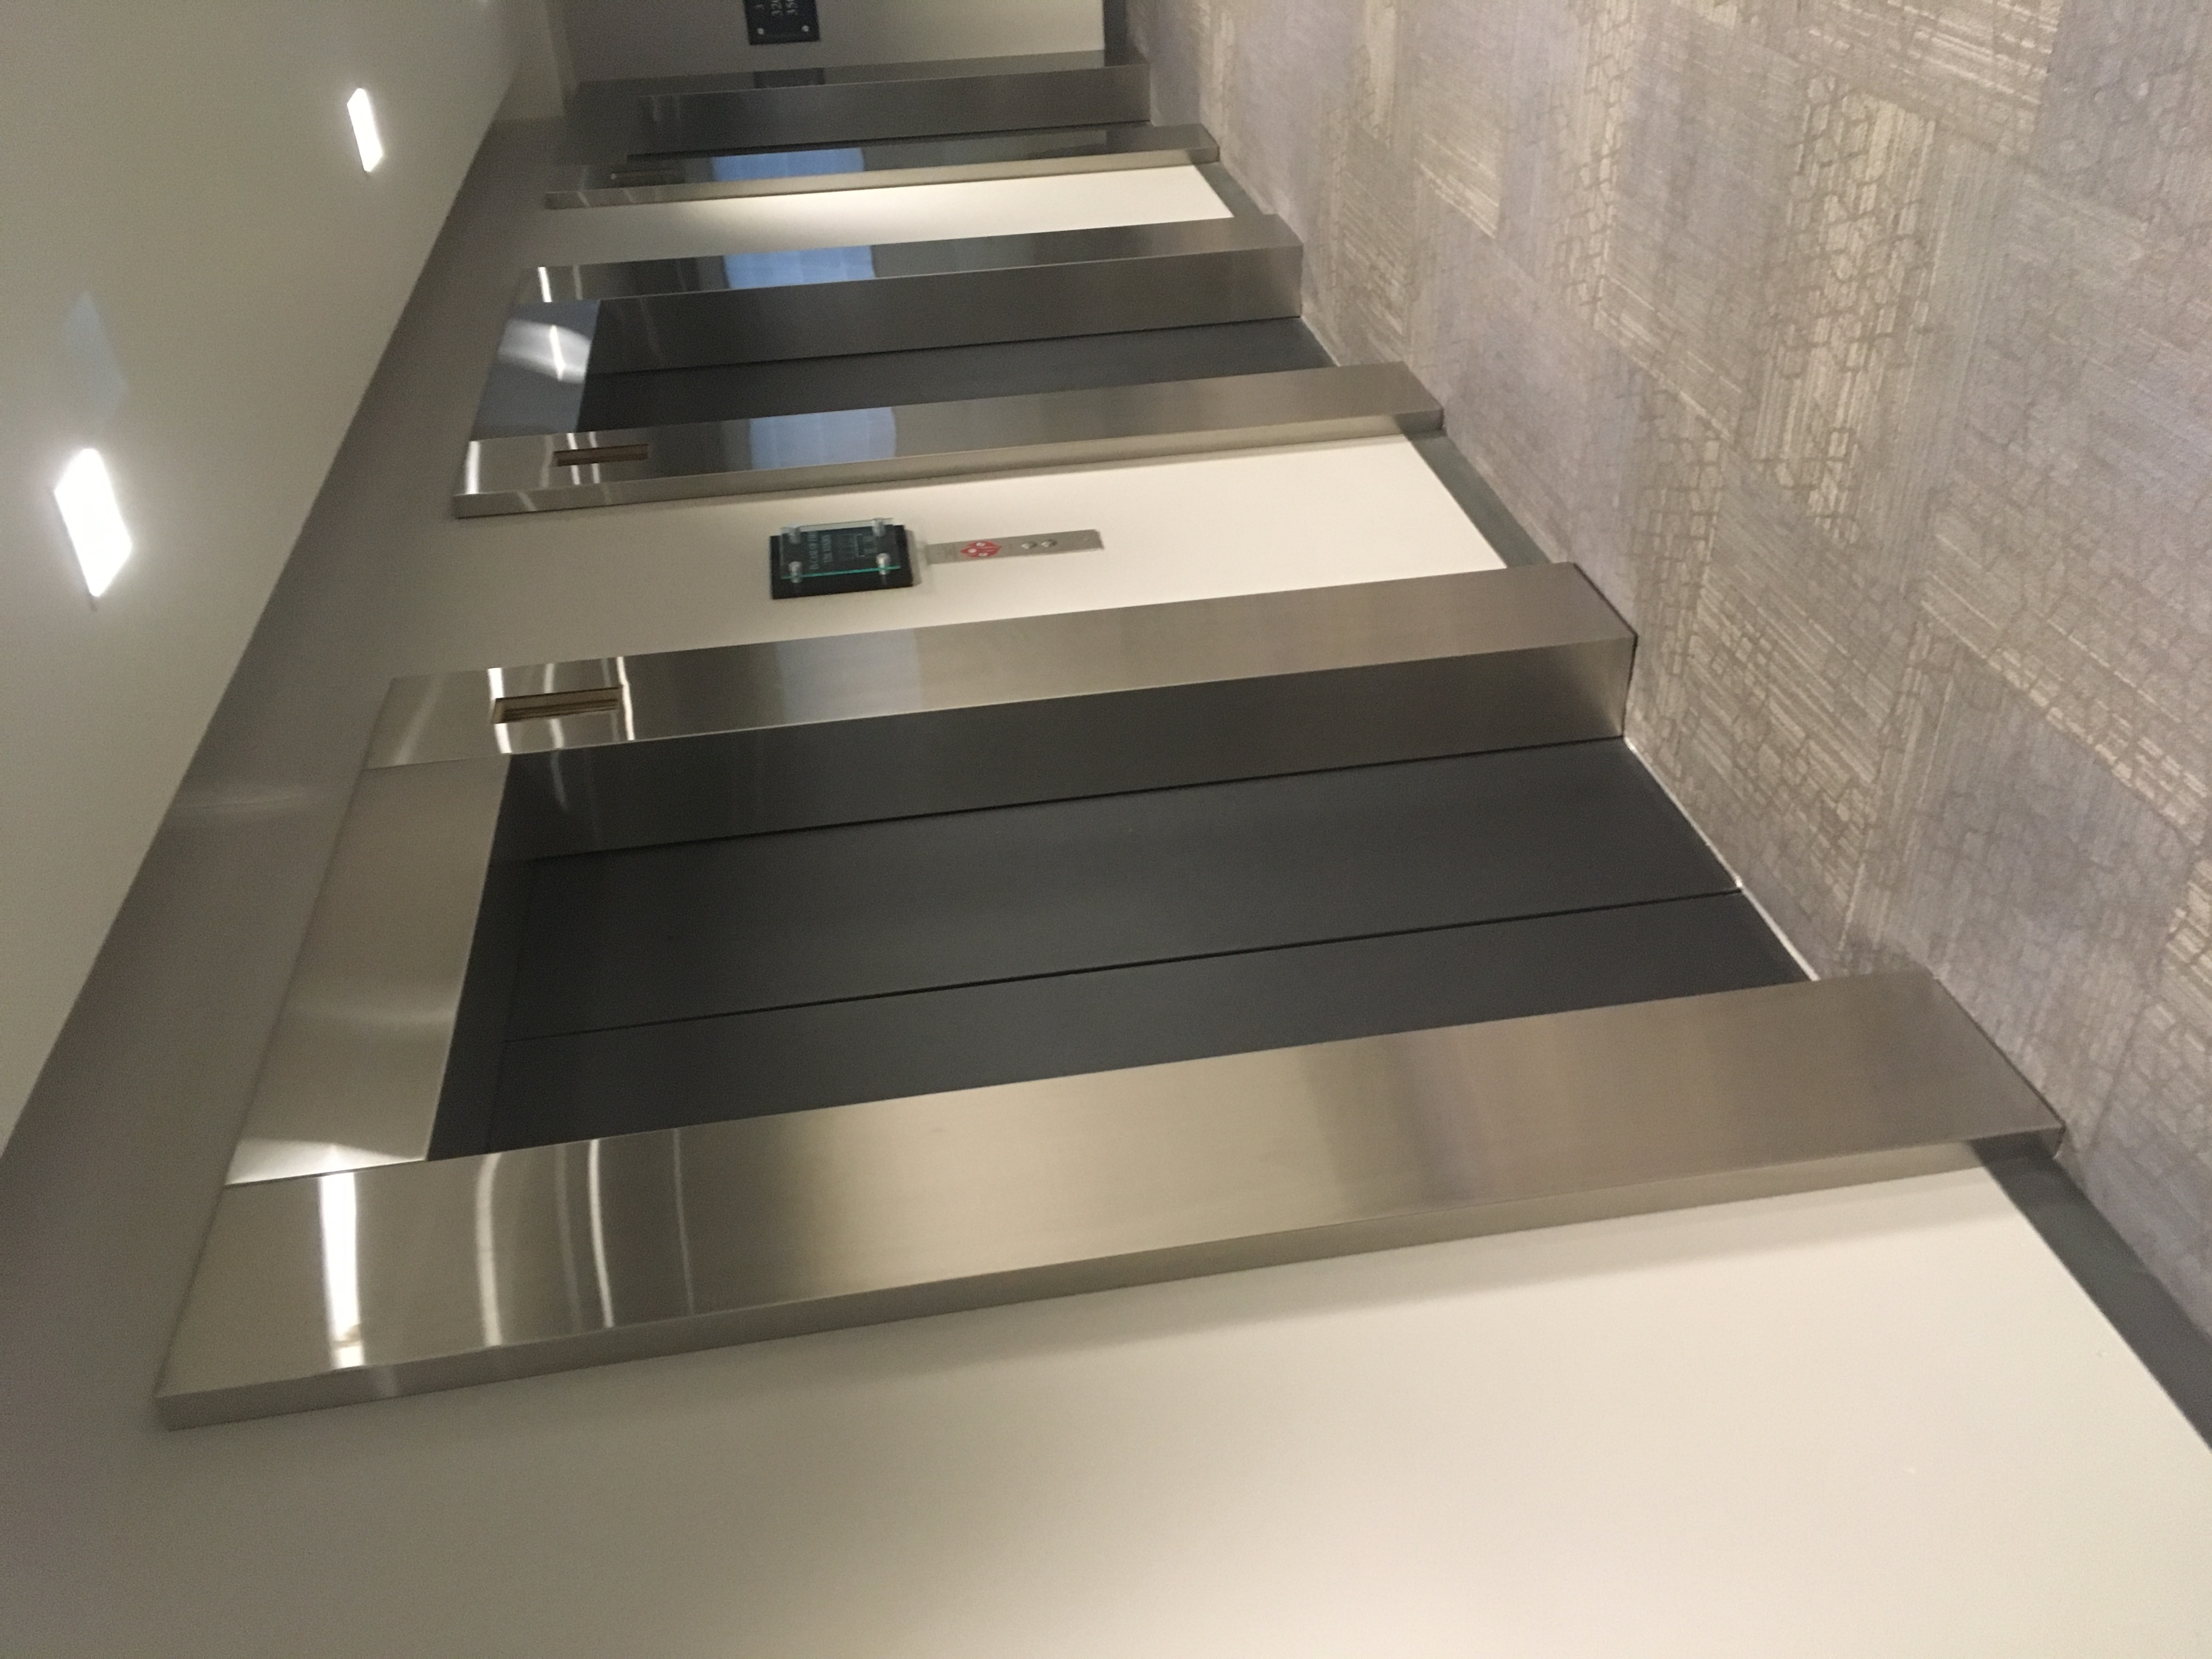 Stainless Steel Elevator Jambs 2